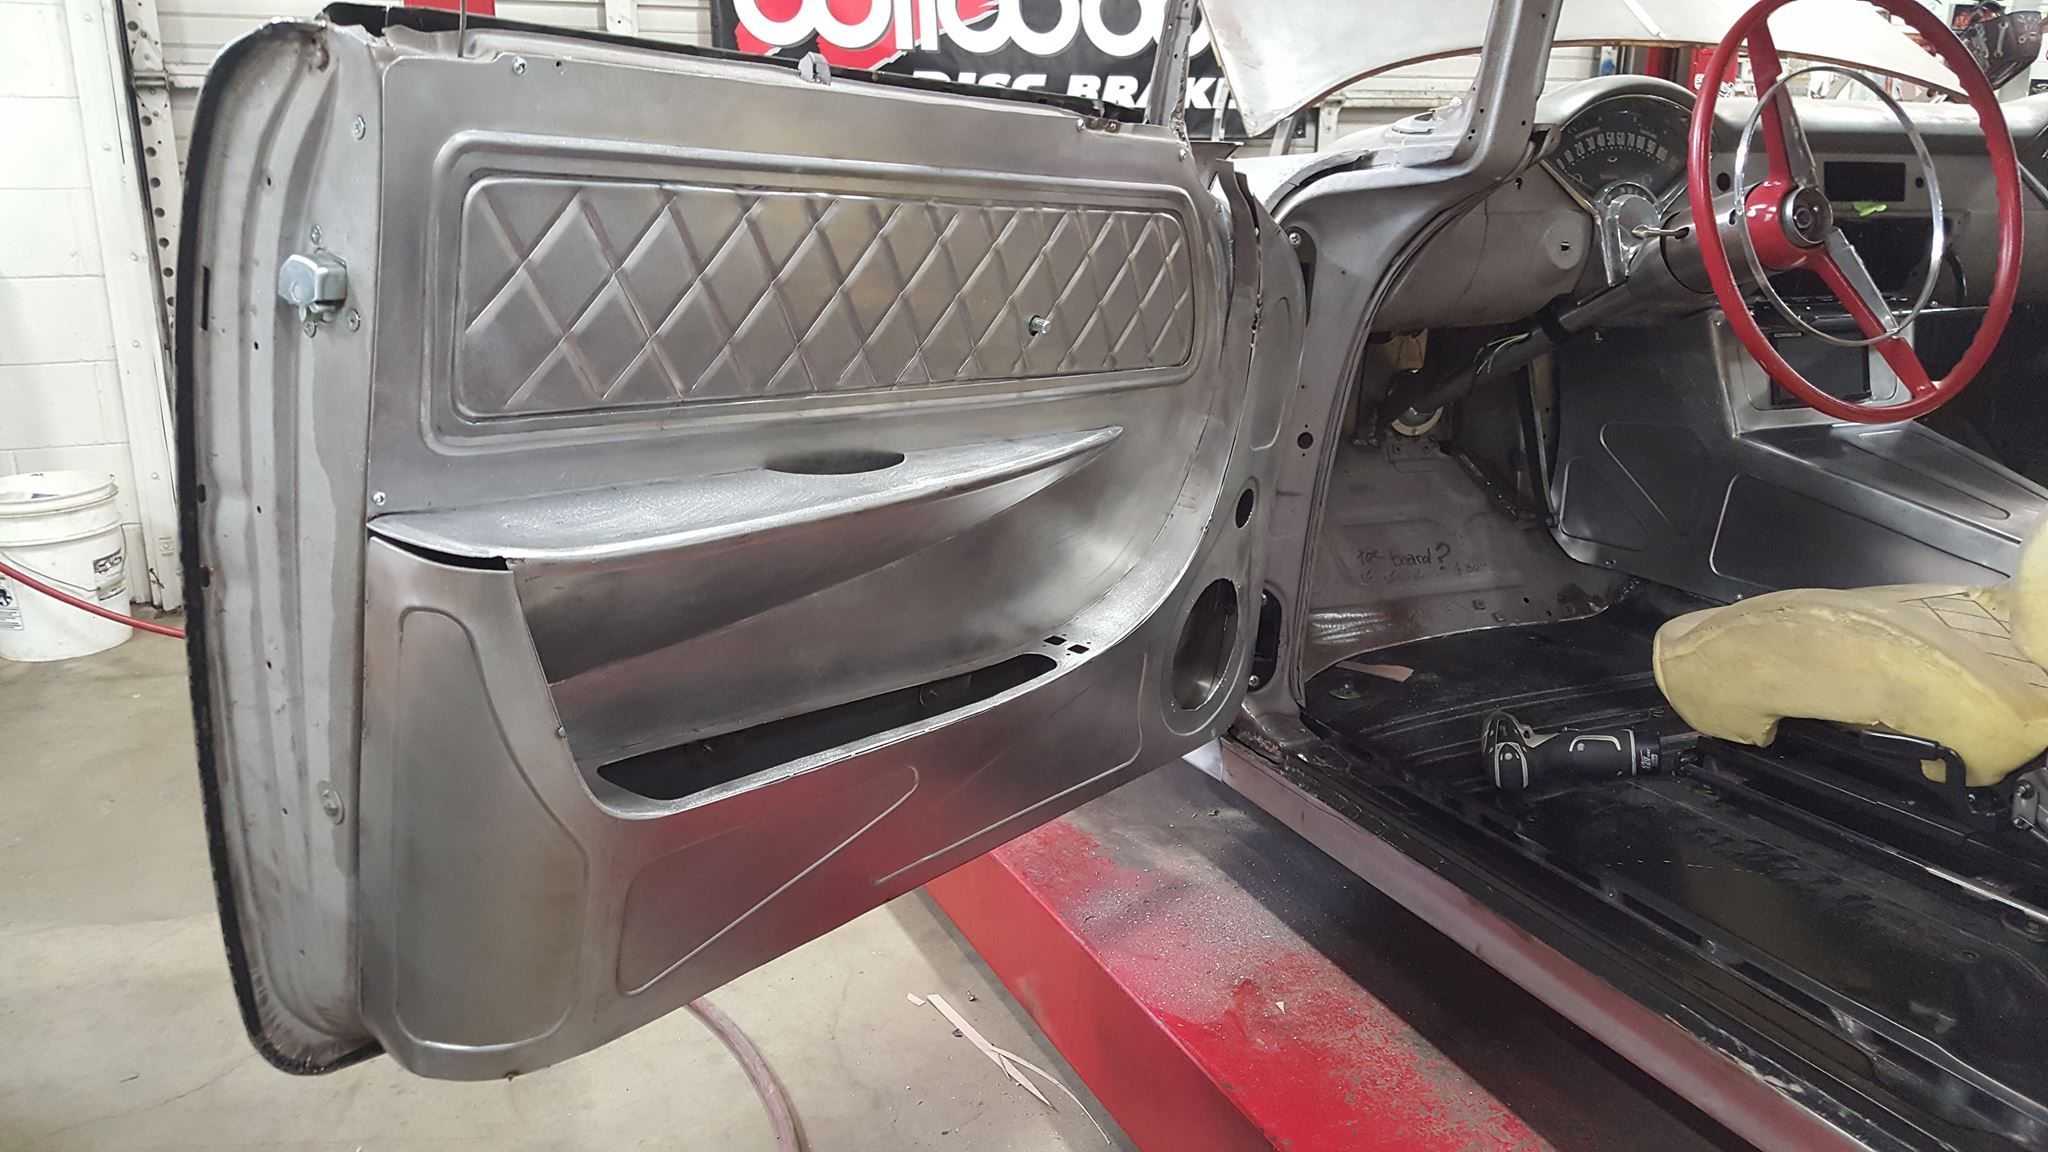 Fabricated Metal Door Panels Vehicles Interior Ideas Pinterest Cars Metal And Panel Doors